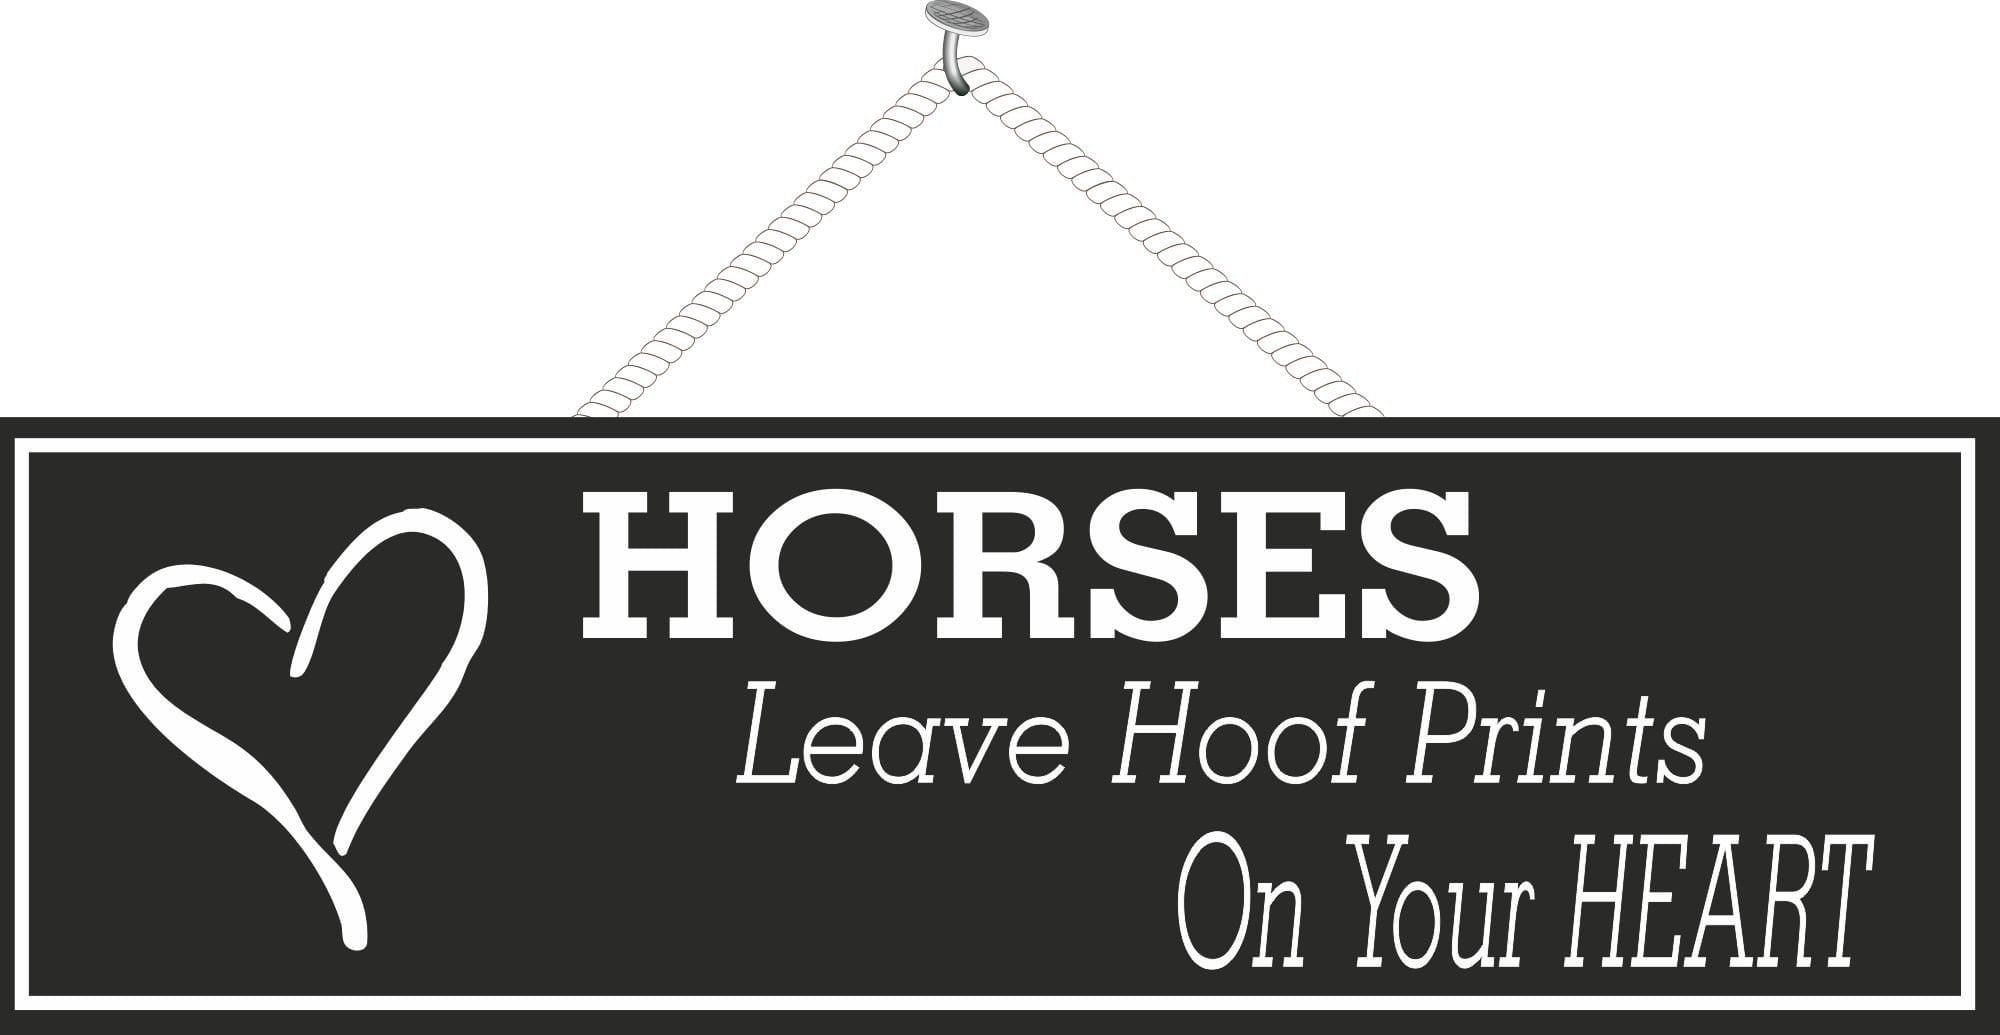 Horses Leave Hoof Prints On Your Heart Inspirational Quote Sign In Black White 18 95